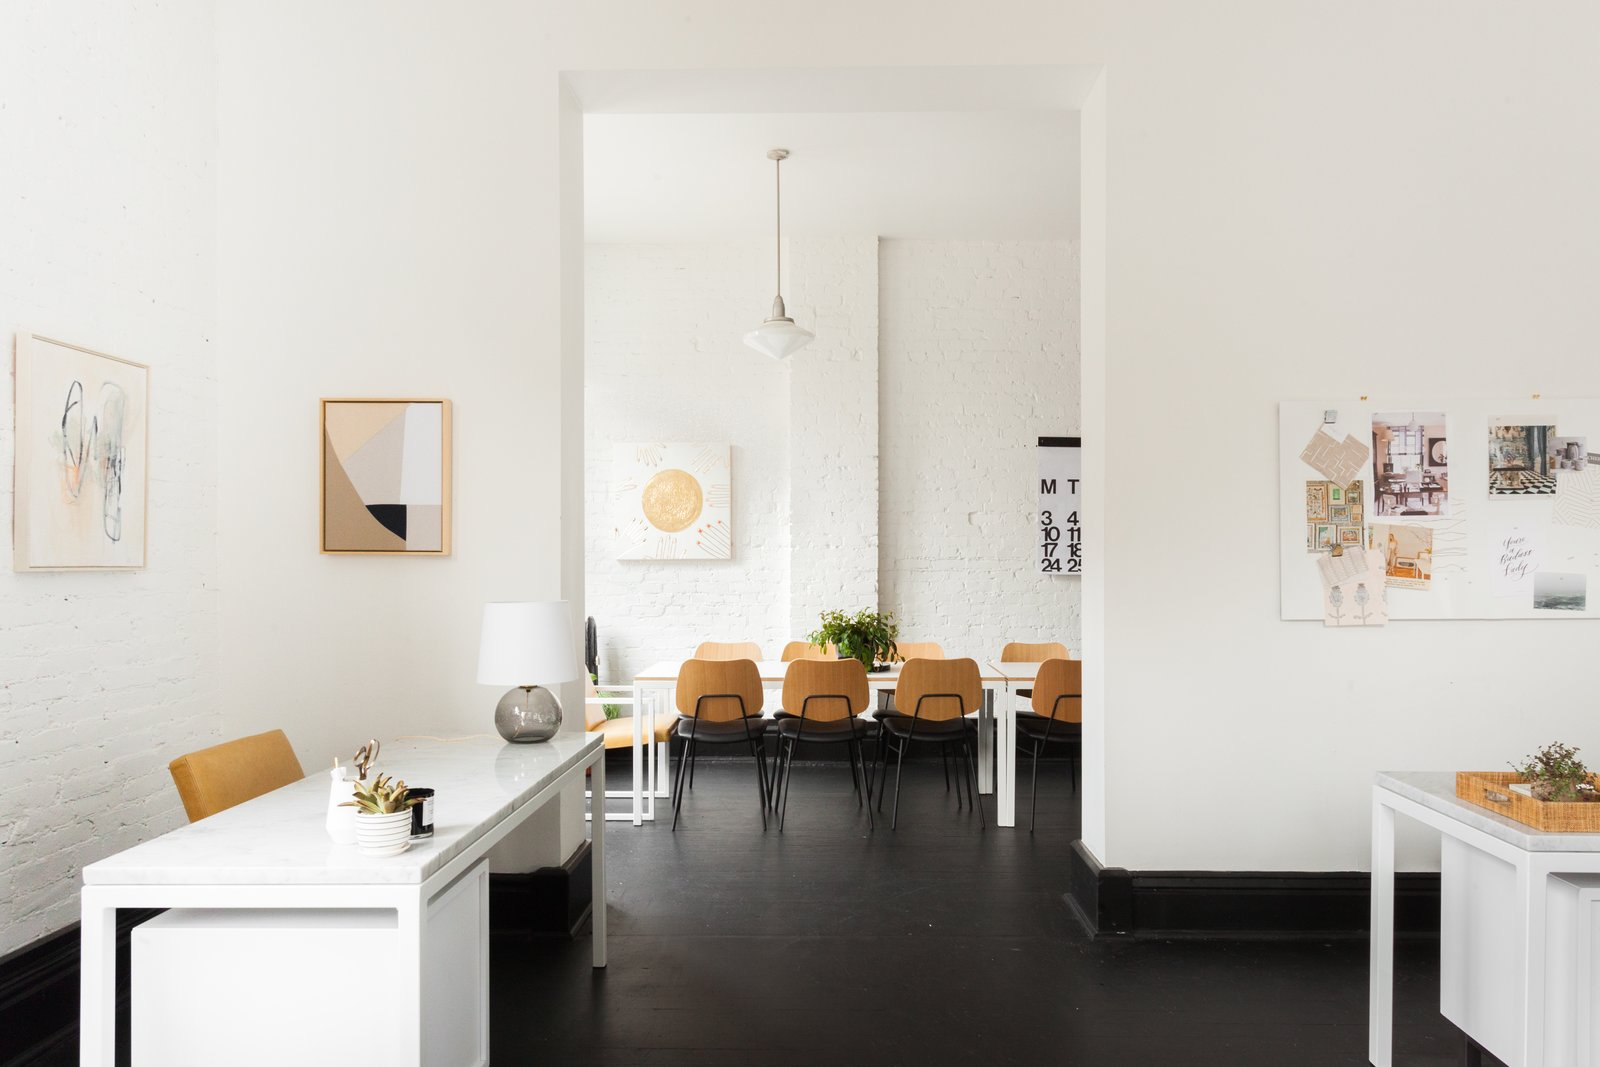 the-office-had-previously-housed-an-architecture-firm-that-had-implemented-a-high-contrast-palette-of-white-brick-walls-and-black-painted-trim-and-flooring-aesthetically-our-two-goals-with-the-interior-were-to-bring-a-little-warmth-to-the-b.jpg